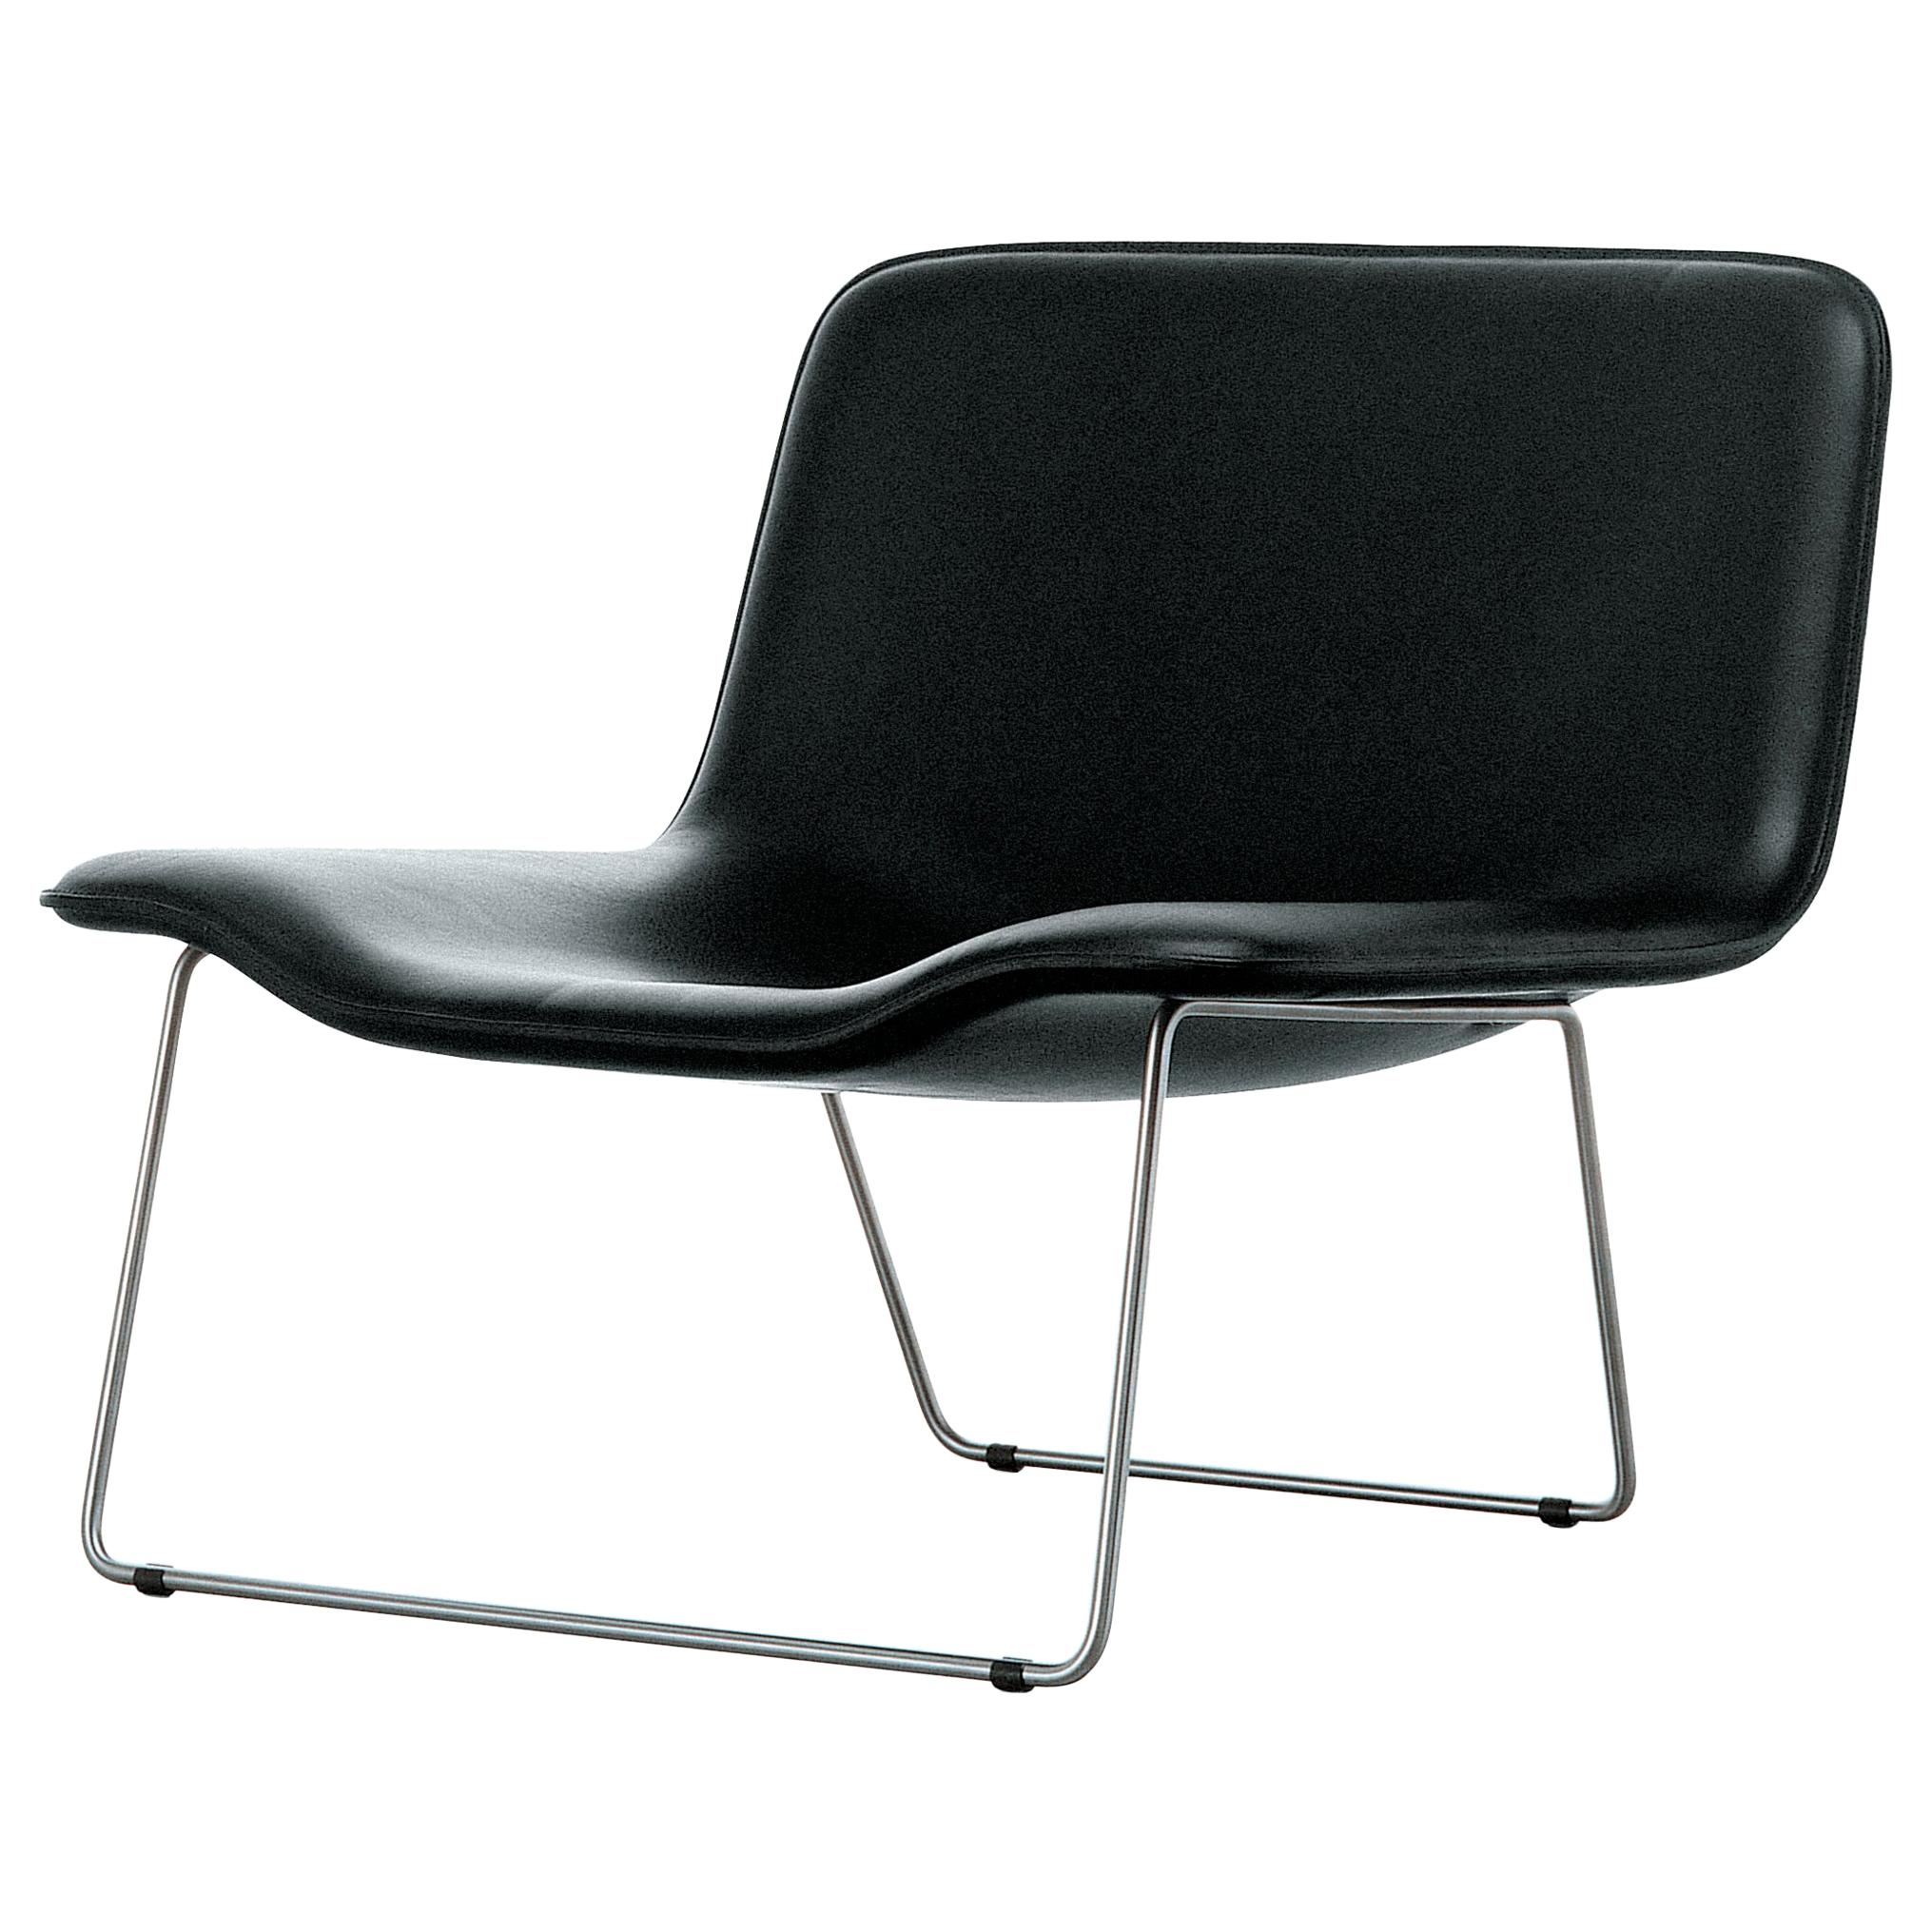 Erwan Bouroullec Spring Armchair in Satined Stainless Steel for Cappellini